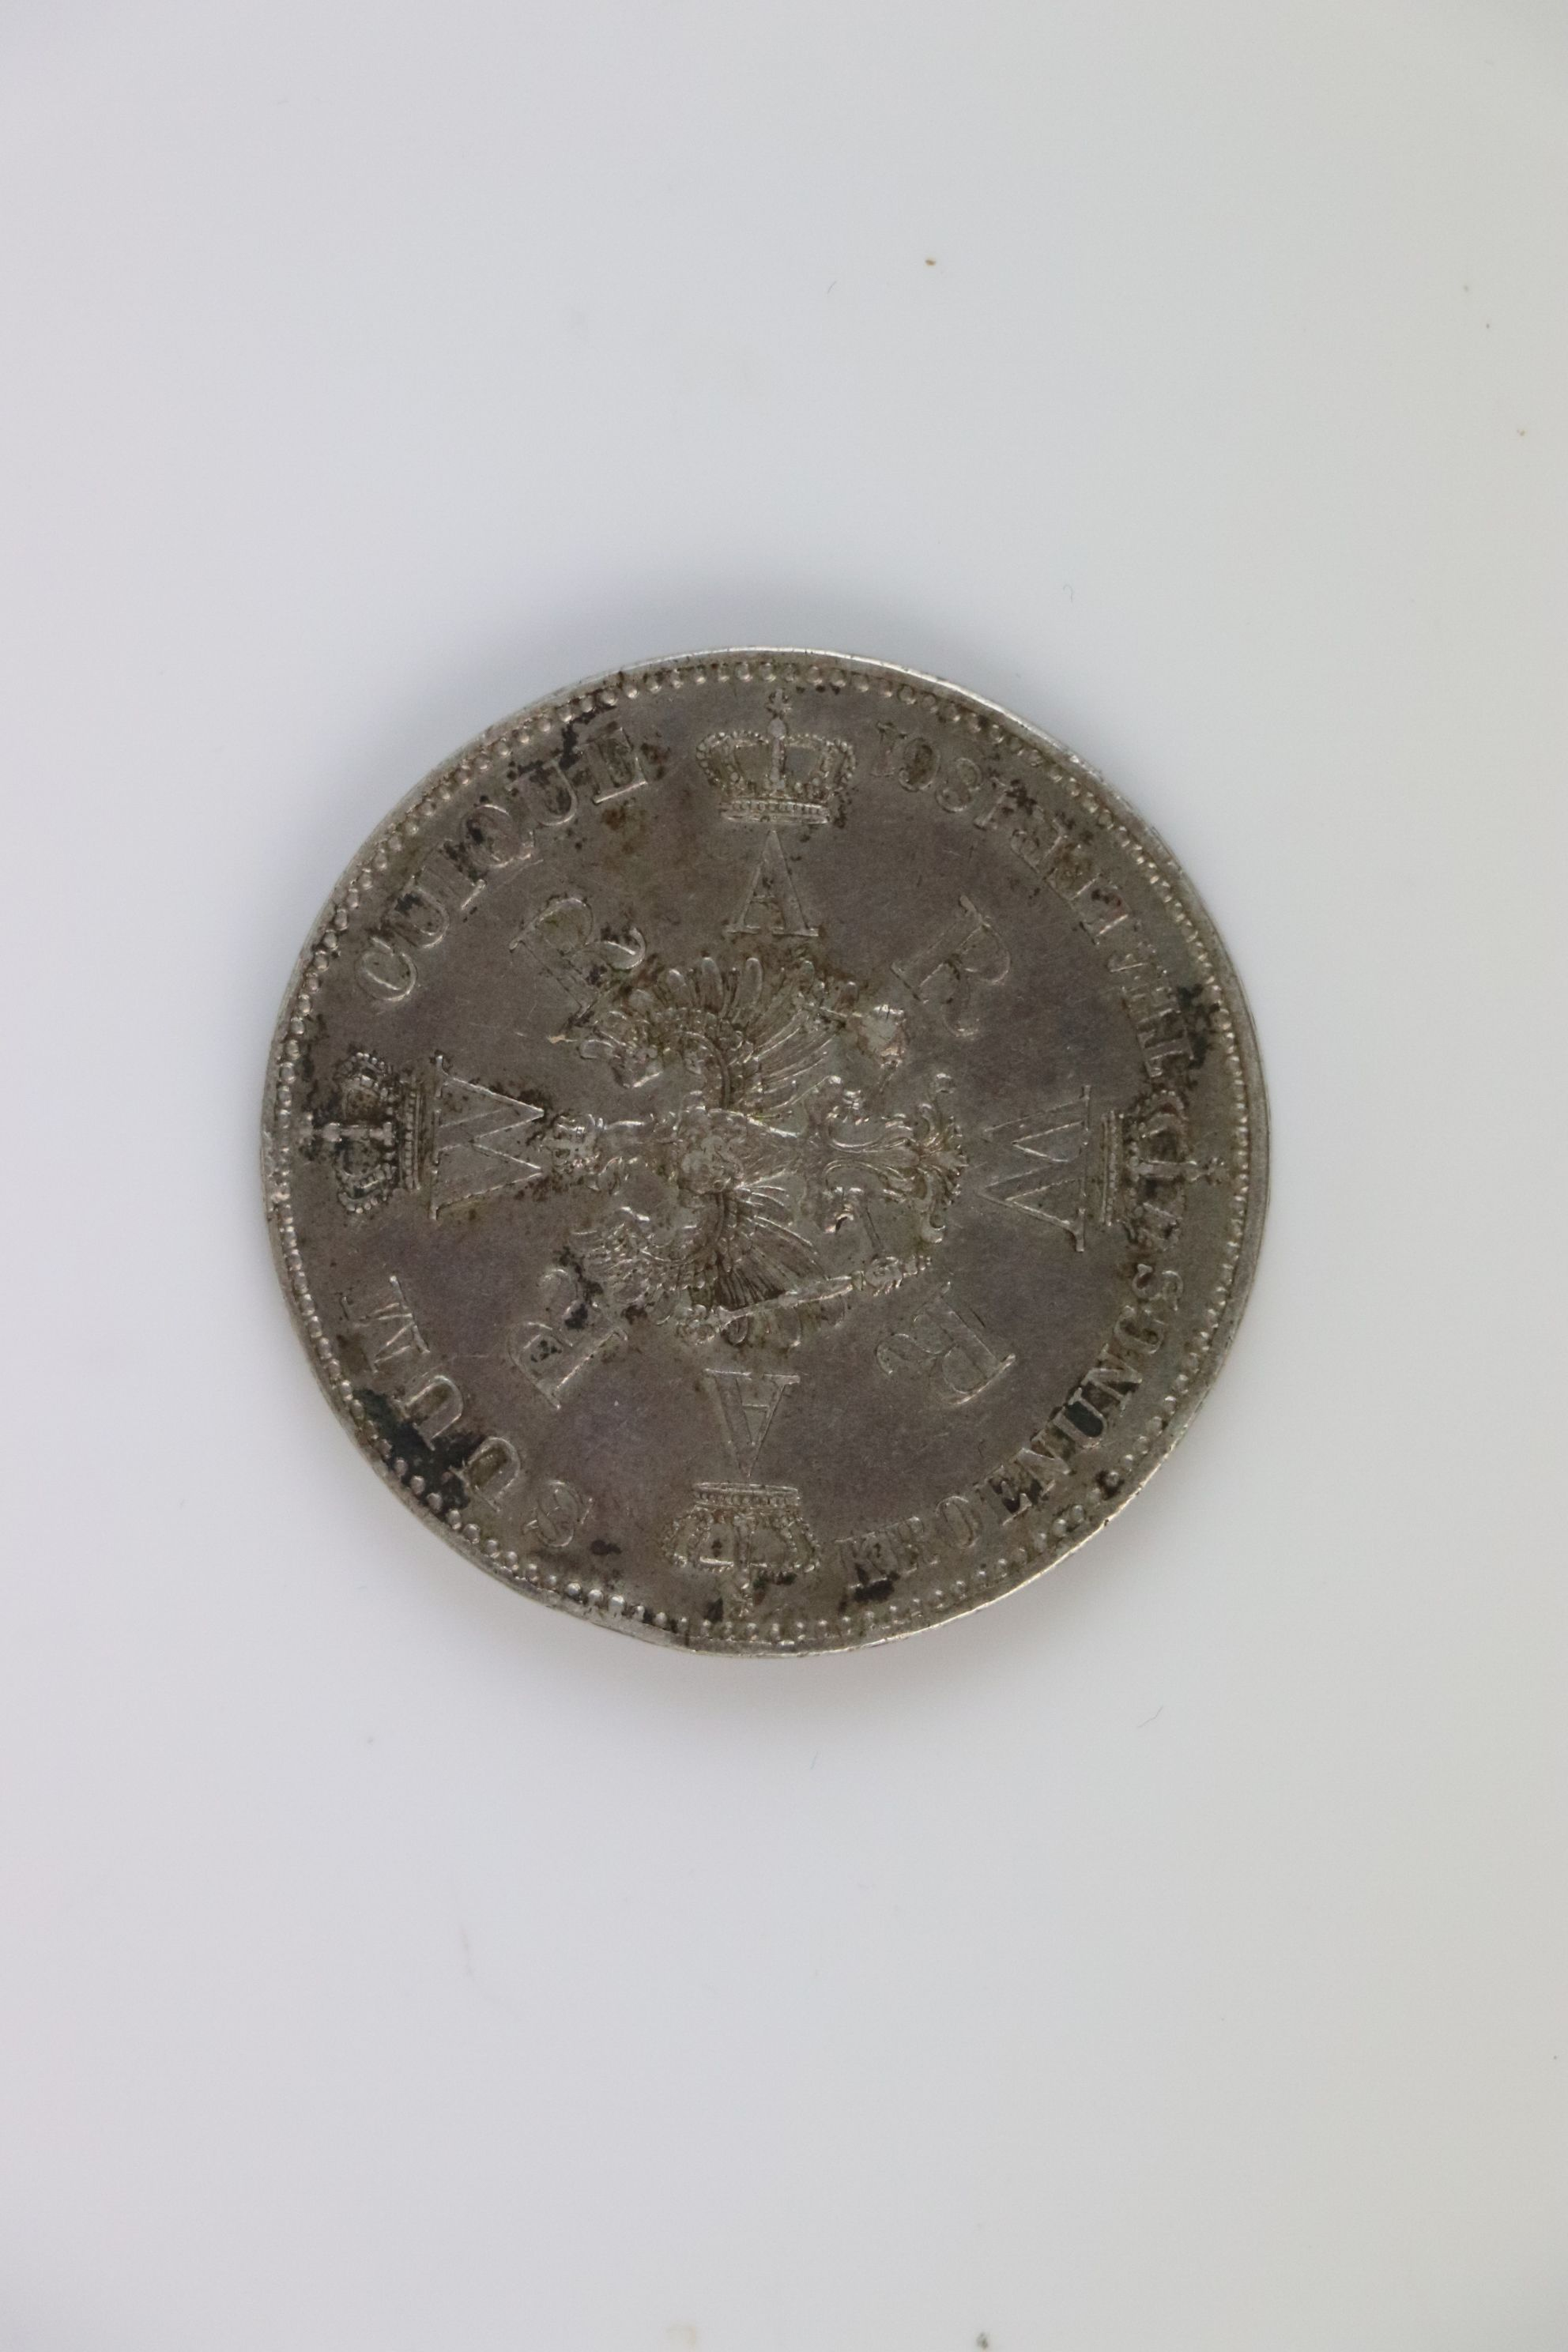 Prussian Silver Thaler coin 1861 - Image 2 of 3